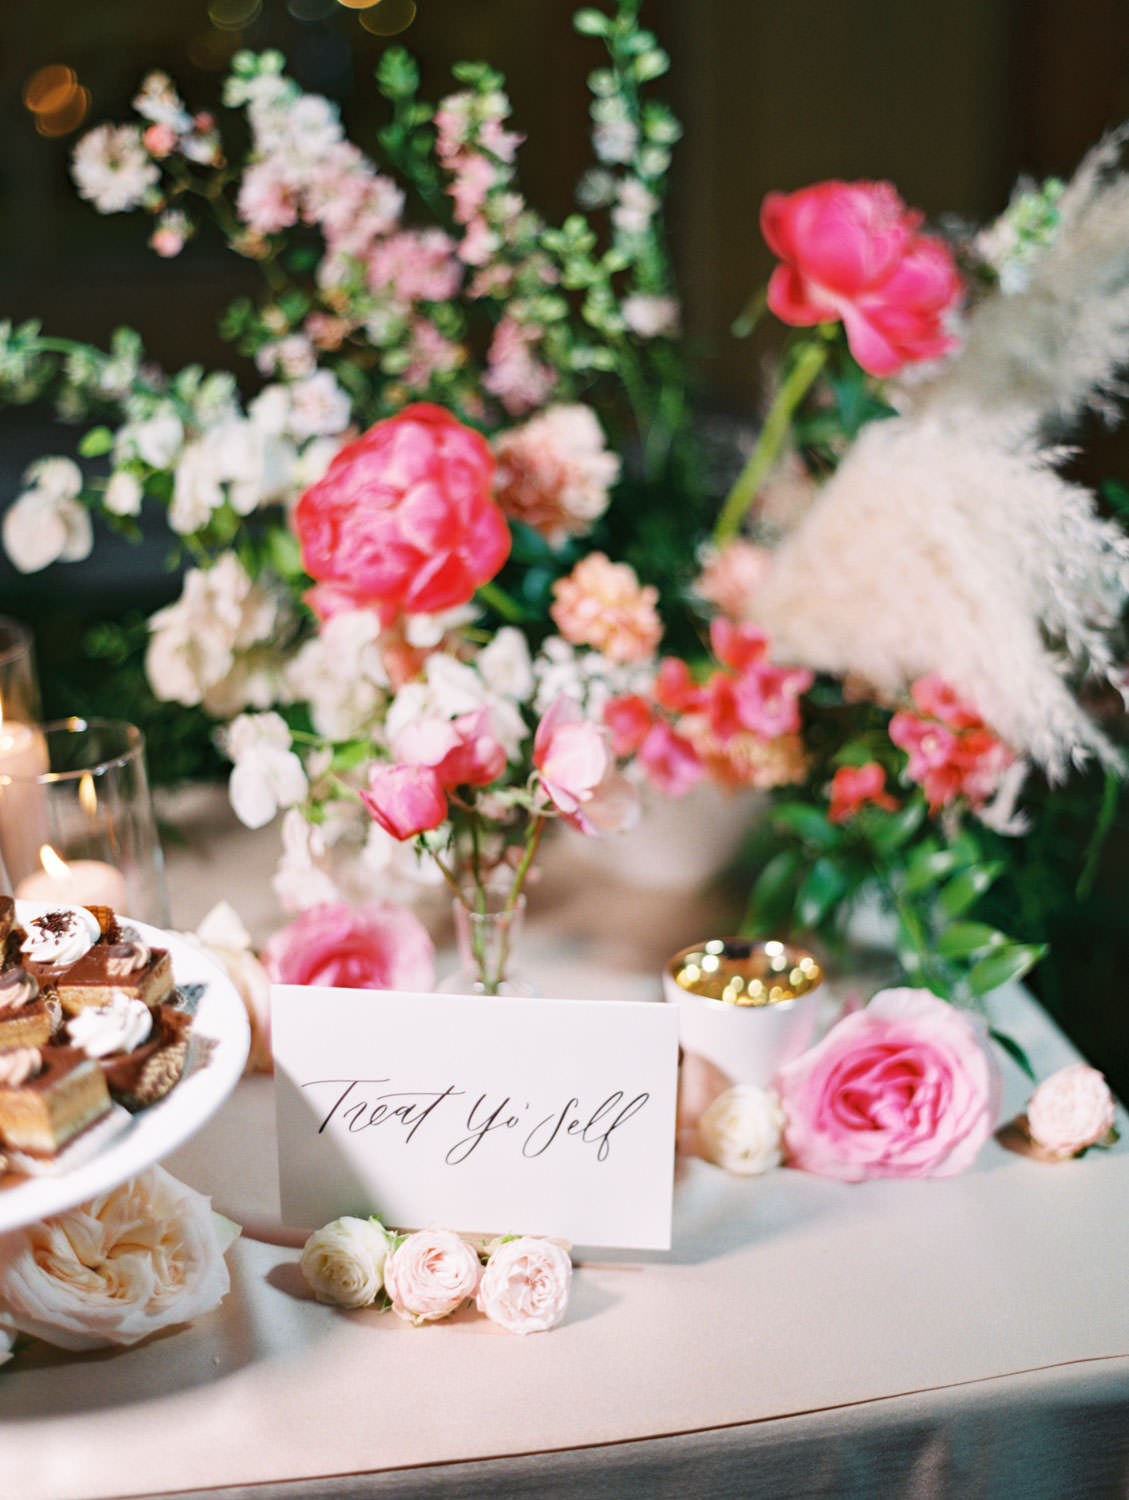 Dessert display treat yo'self sign with arrangement of pink and ivory flowers. Film photography by Cavin Elizabeth.